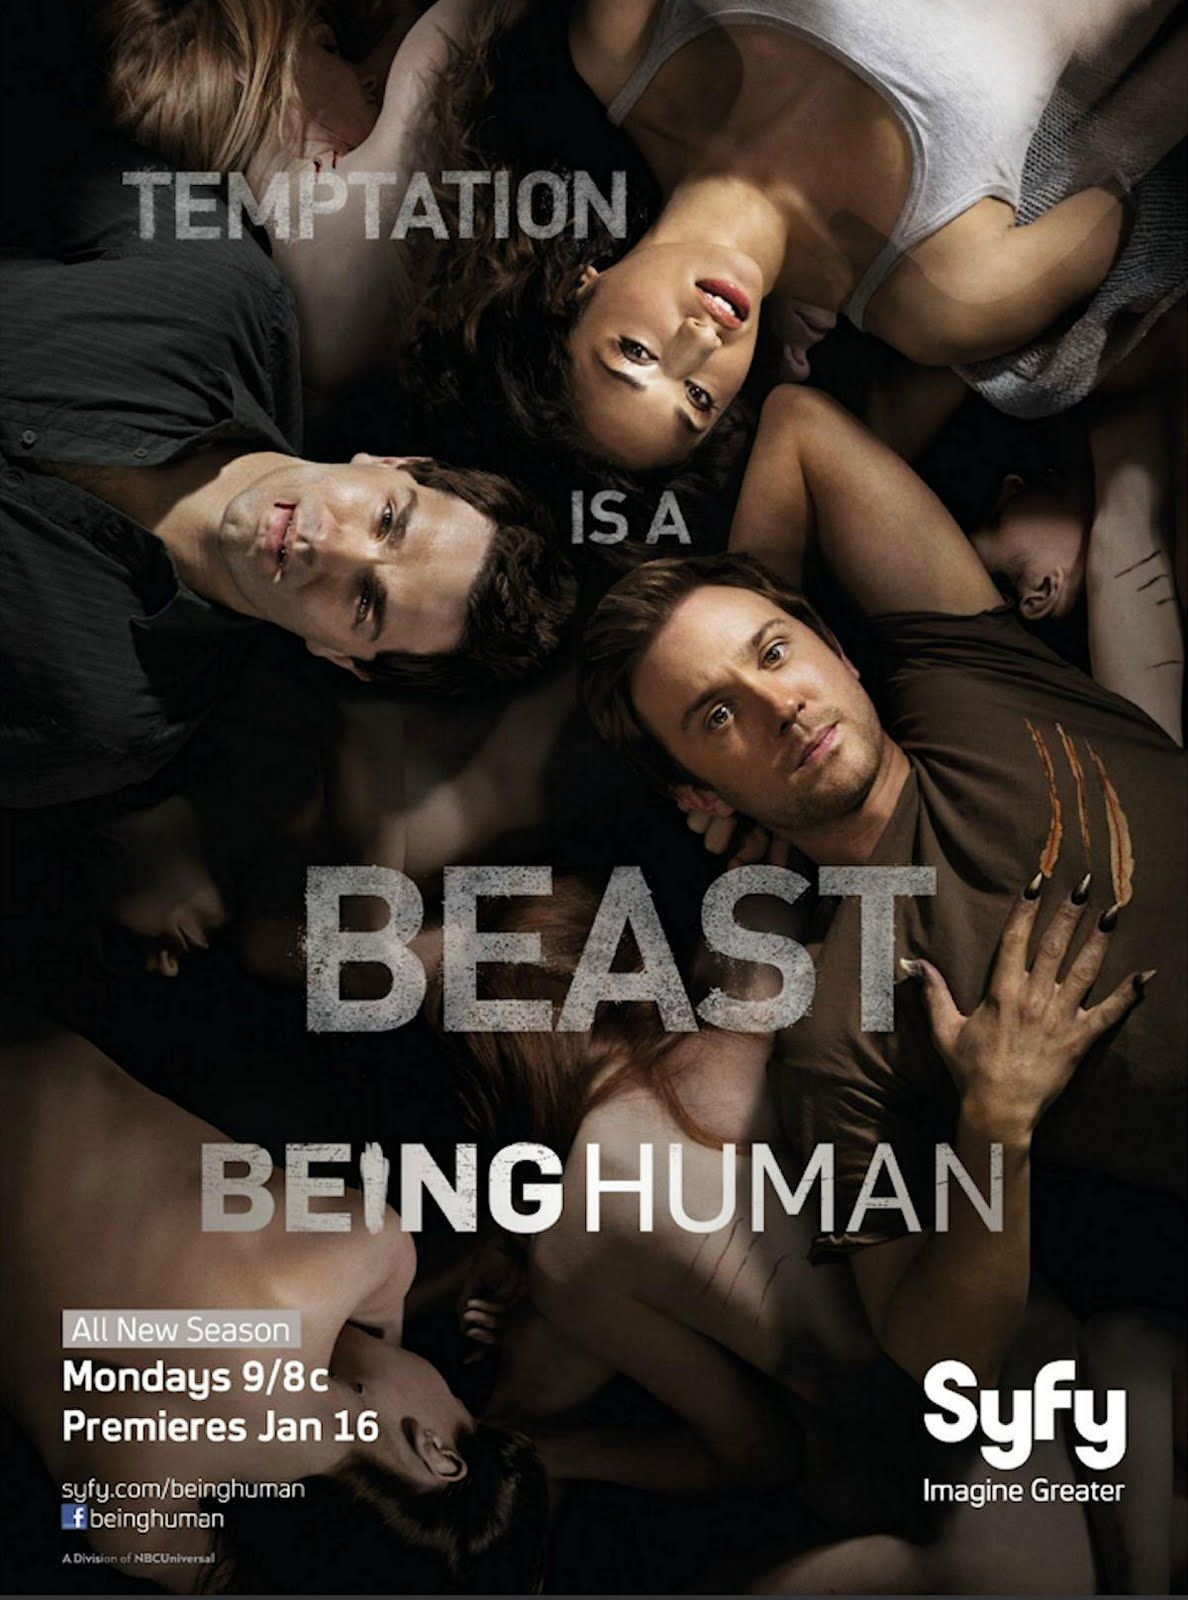 Being Human, 9pm, Syfy. This American remake of a popular Brit show, is better than the original (for once), and definitely better looking. Obviously, I HAD to watch this show; Vampires, Werewolves, and Ghosts, Oh, My! Admittedly, Season 2 has been a little all over the place, but I still like this show a lot. Sam Hungtington is adorable as a werewolf w/ a heart of gold, and I think he carries the show.